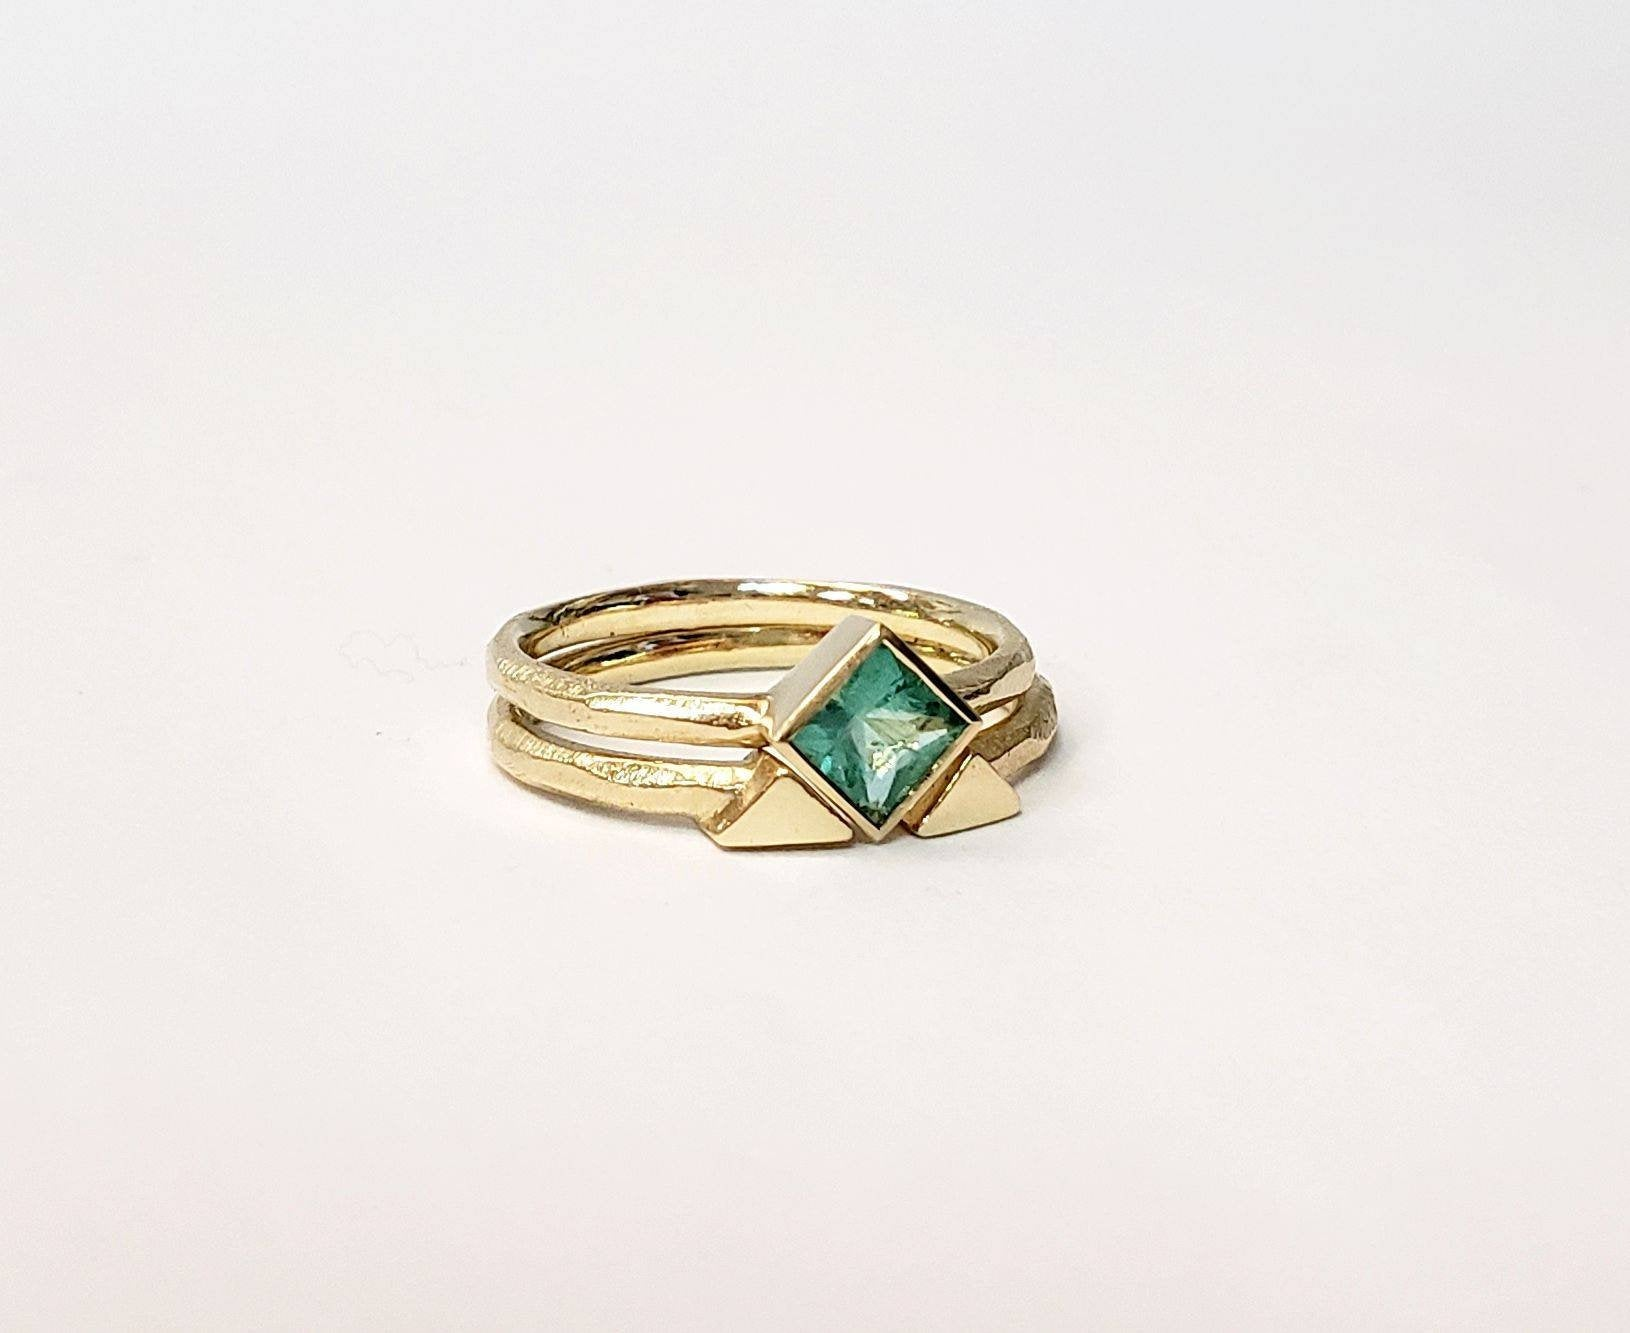 Emerald engagement ring set princess cut square stone with matching spacer ring in gold